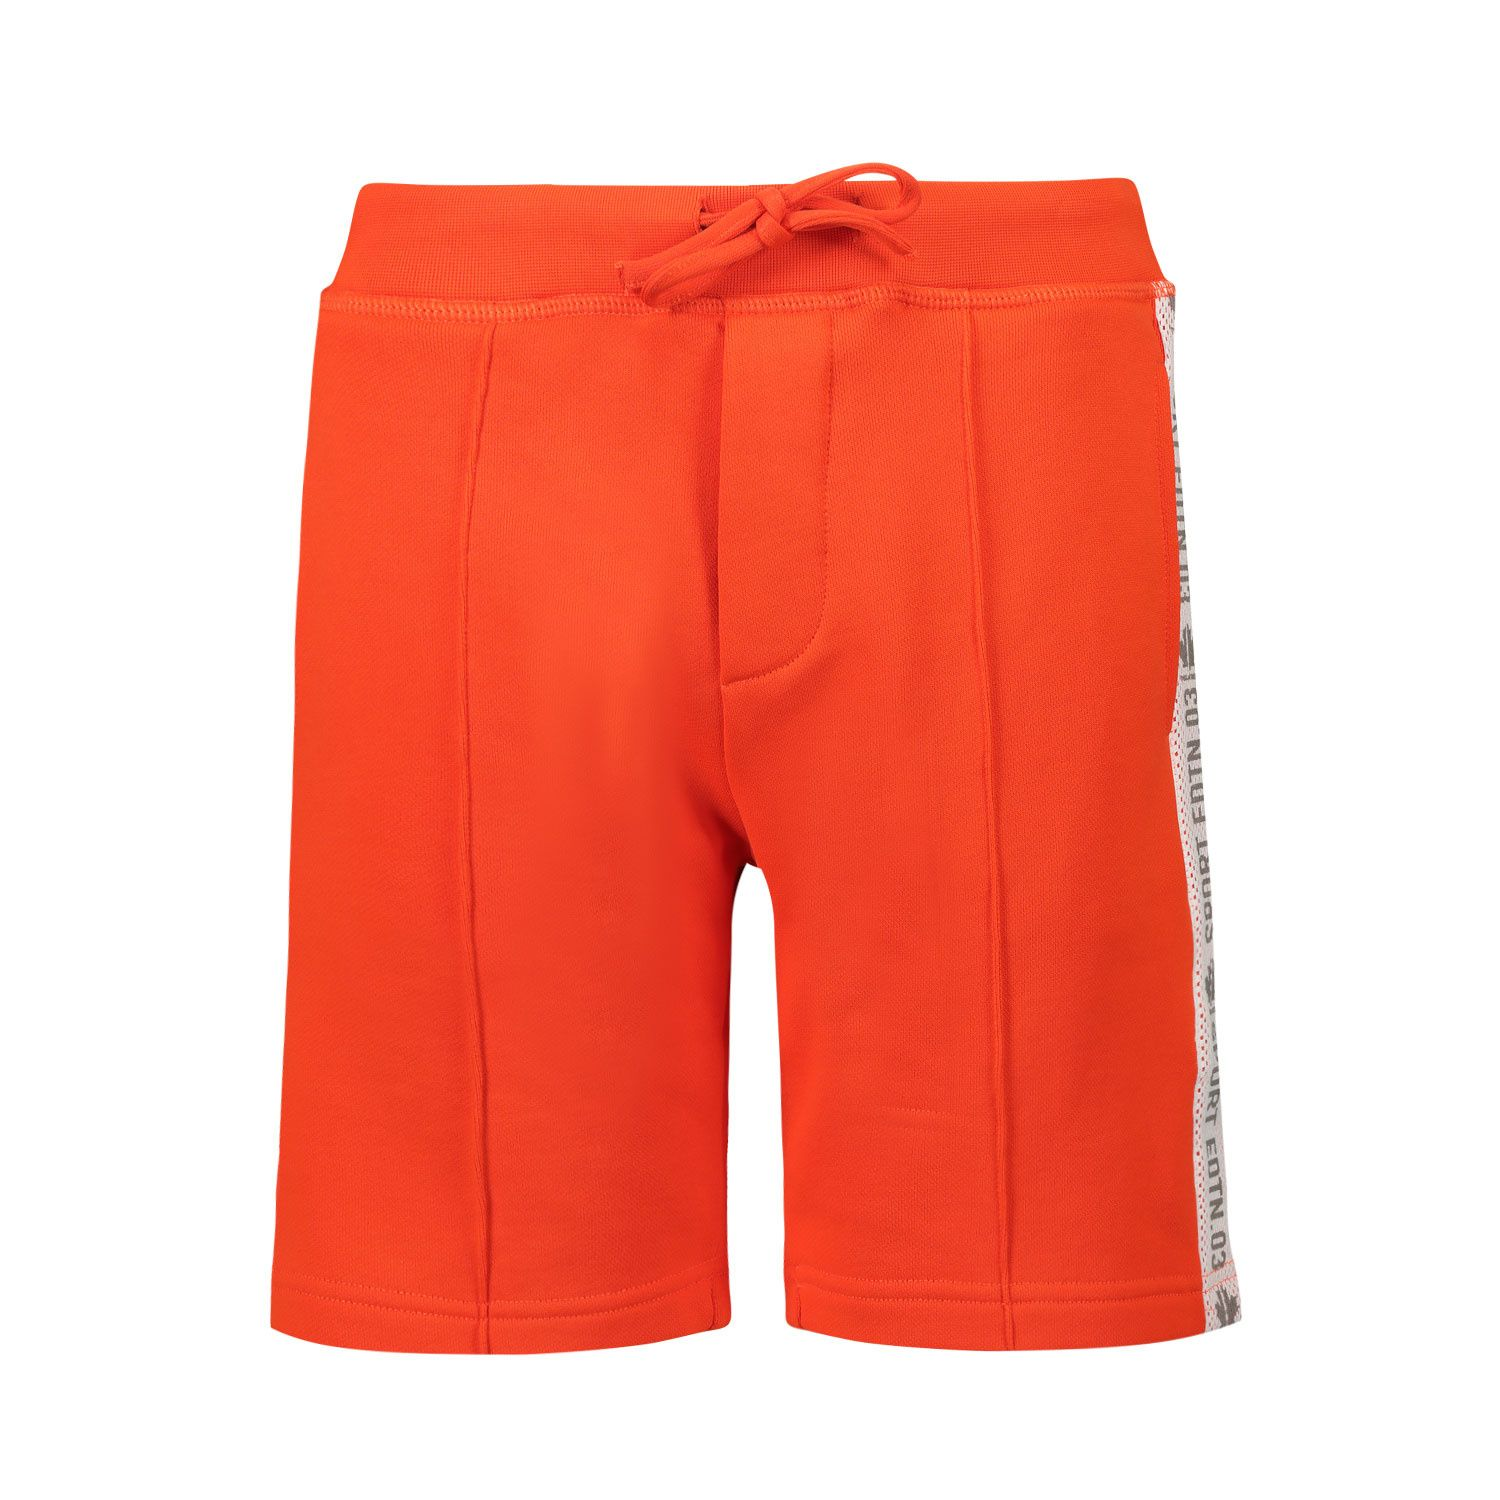 Bild von Dsquared2 DQ0011 Kindershorts Orange